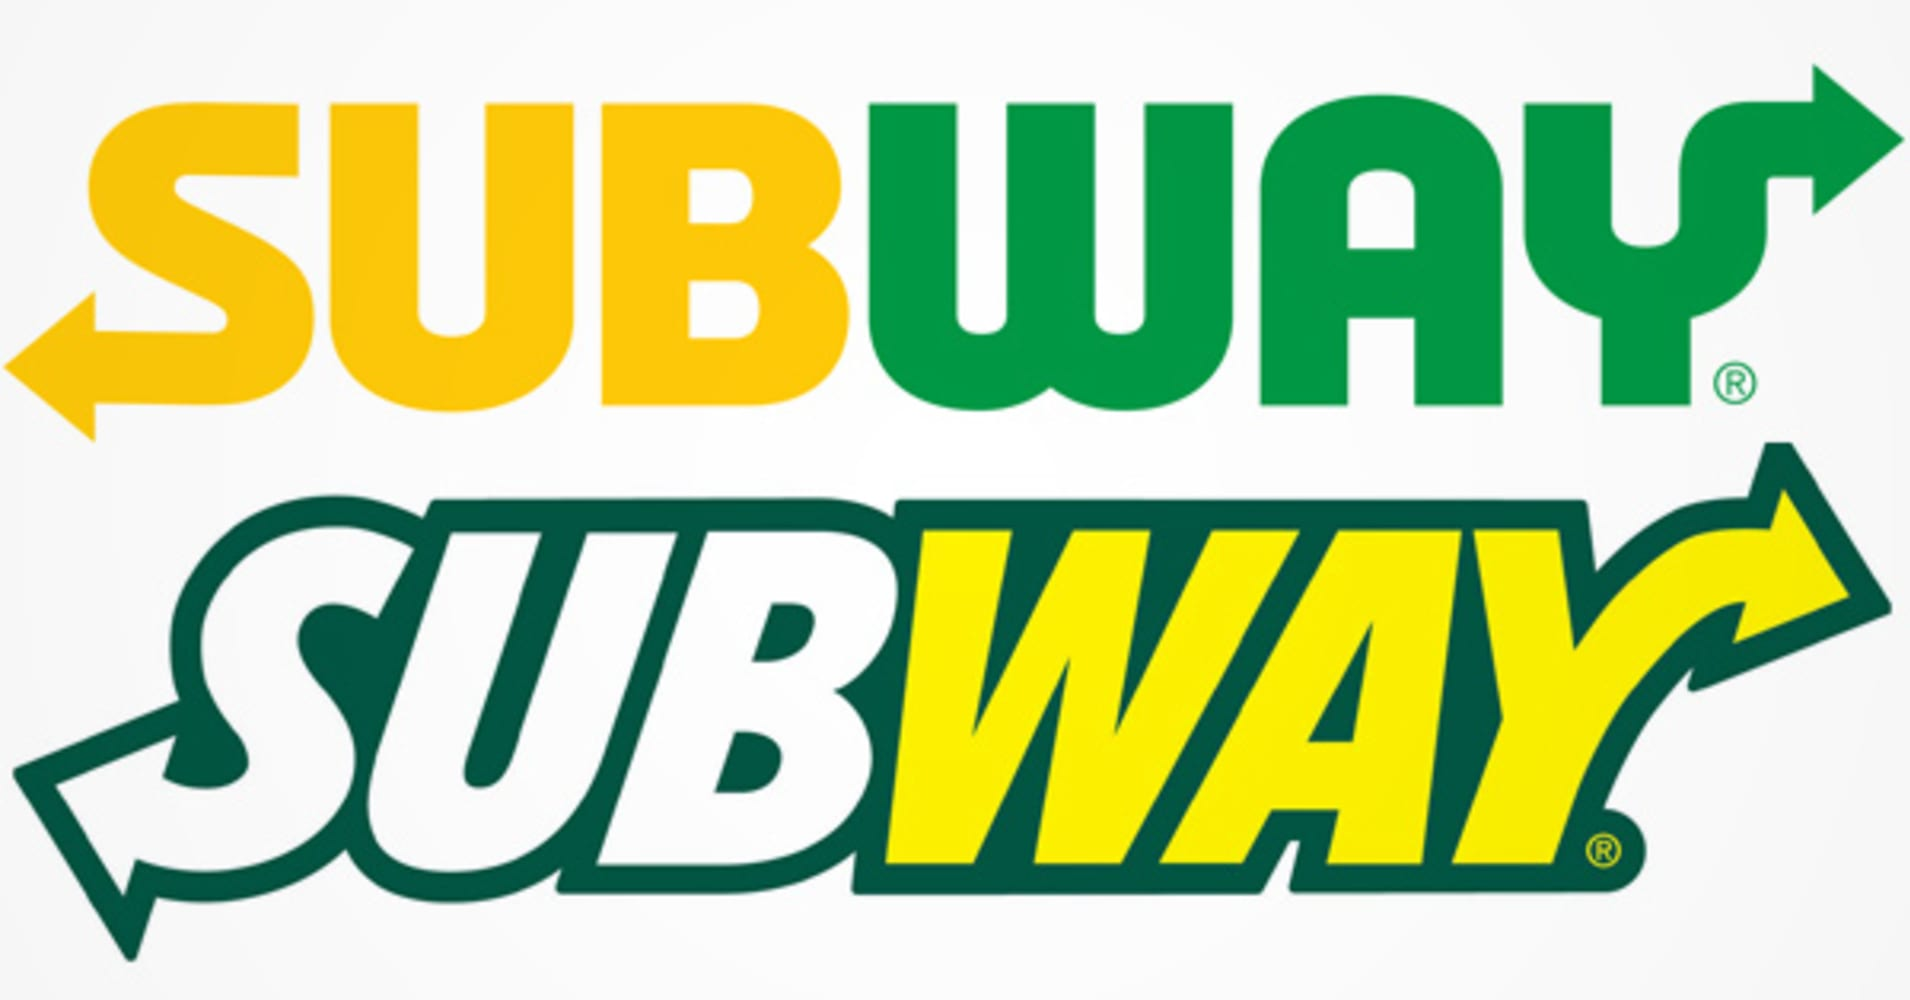 After 15 years, Subway has a brand new logo